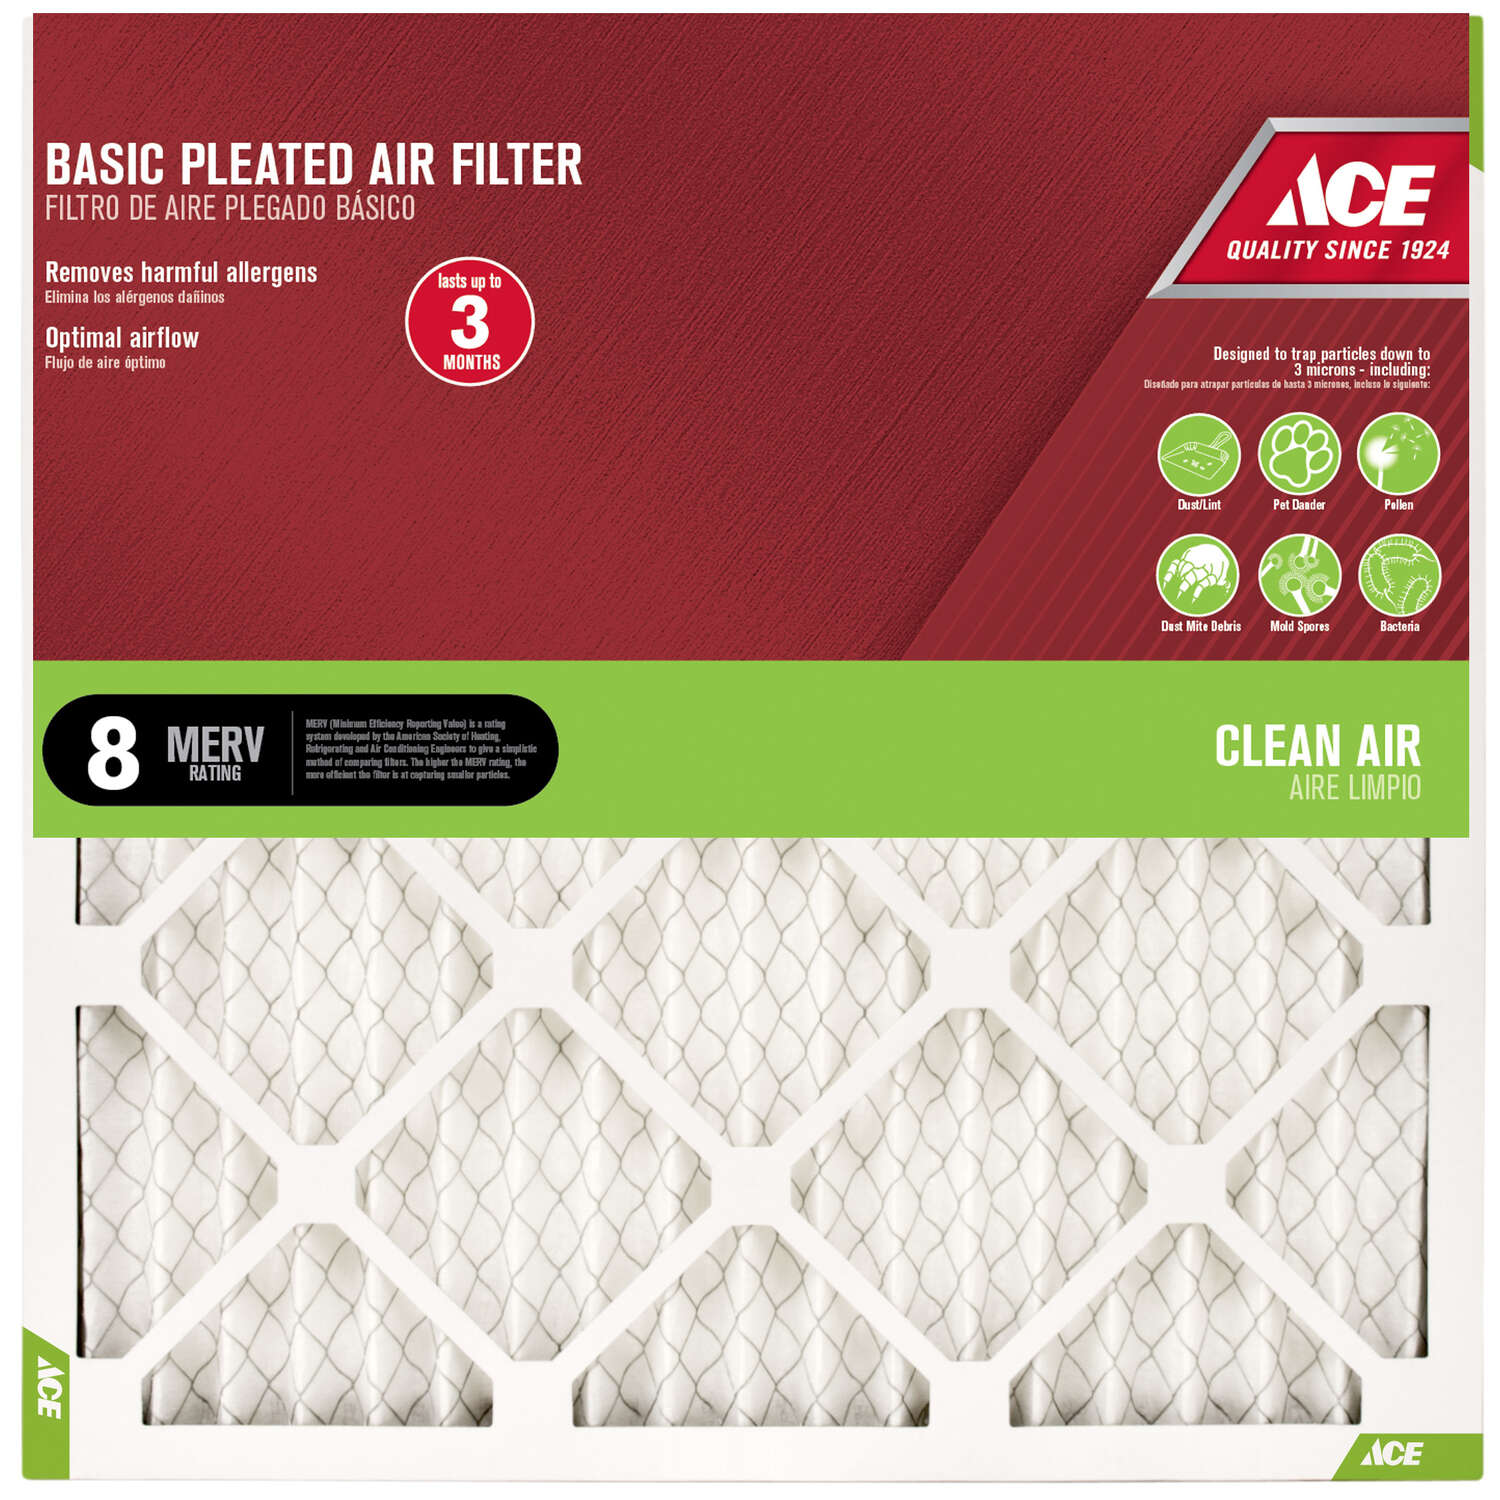 Ace 18 in. W x 18 in. H x 1 in. D Cotton 8 MERV Pleated Air Filter